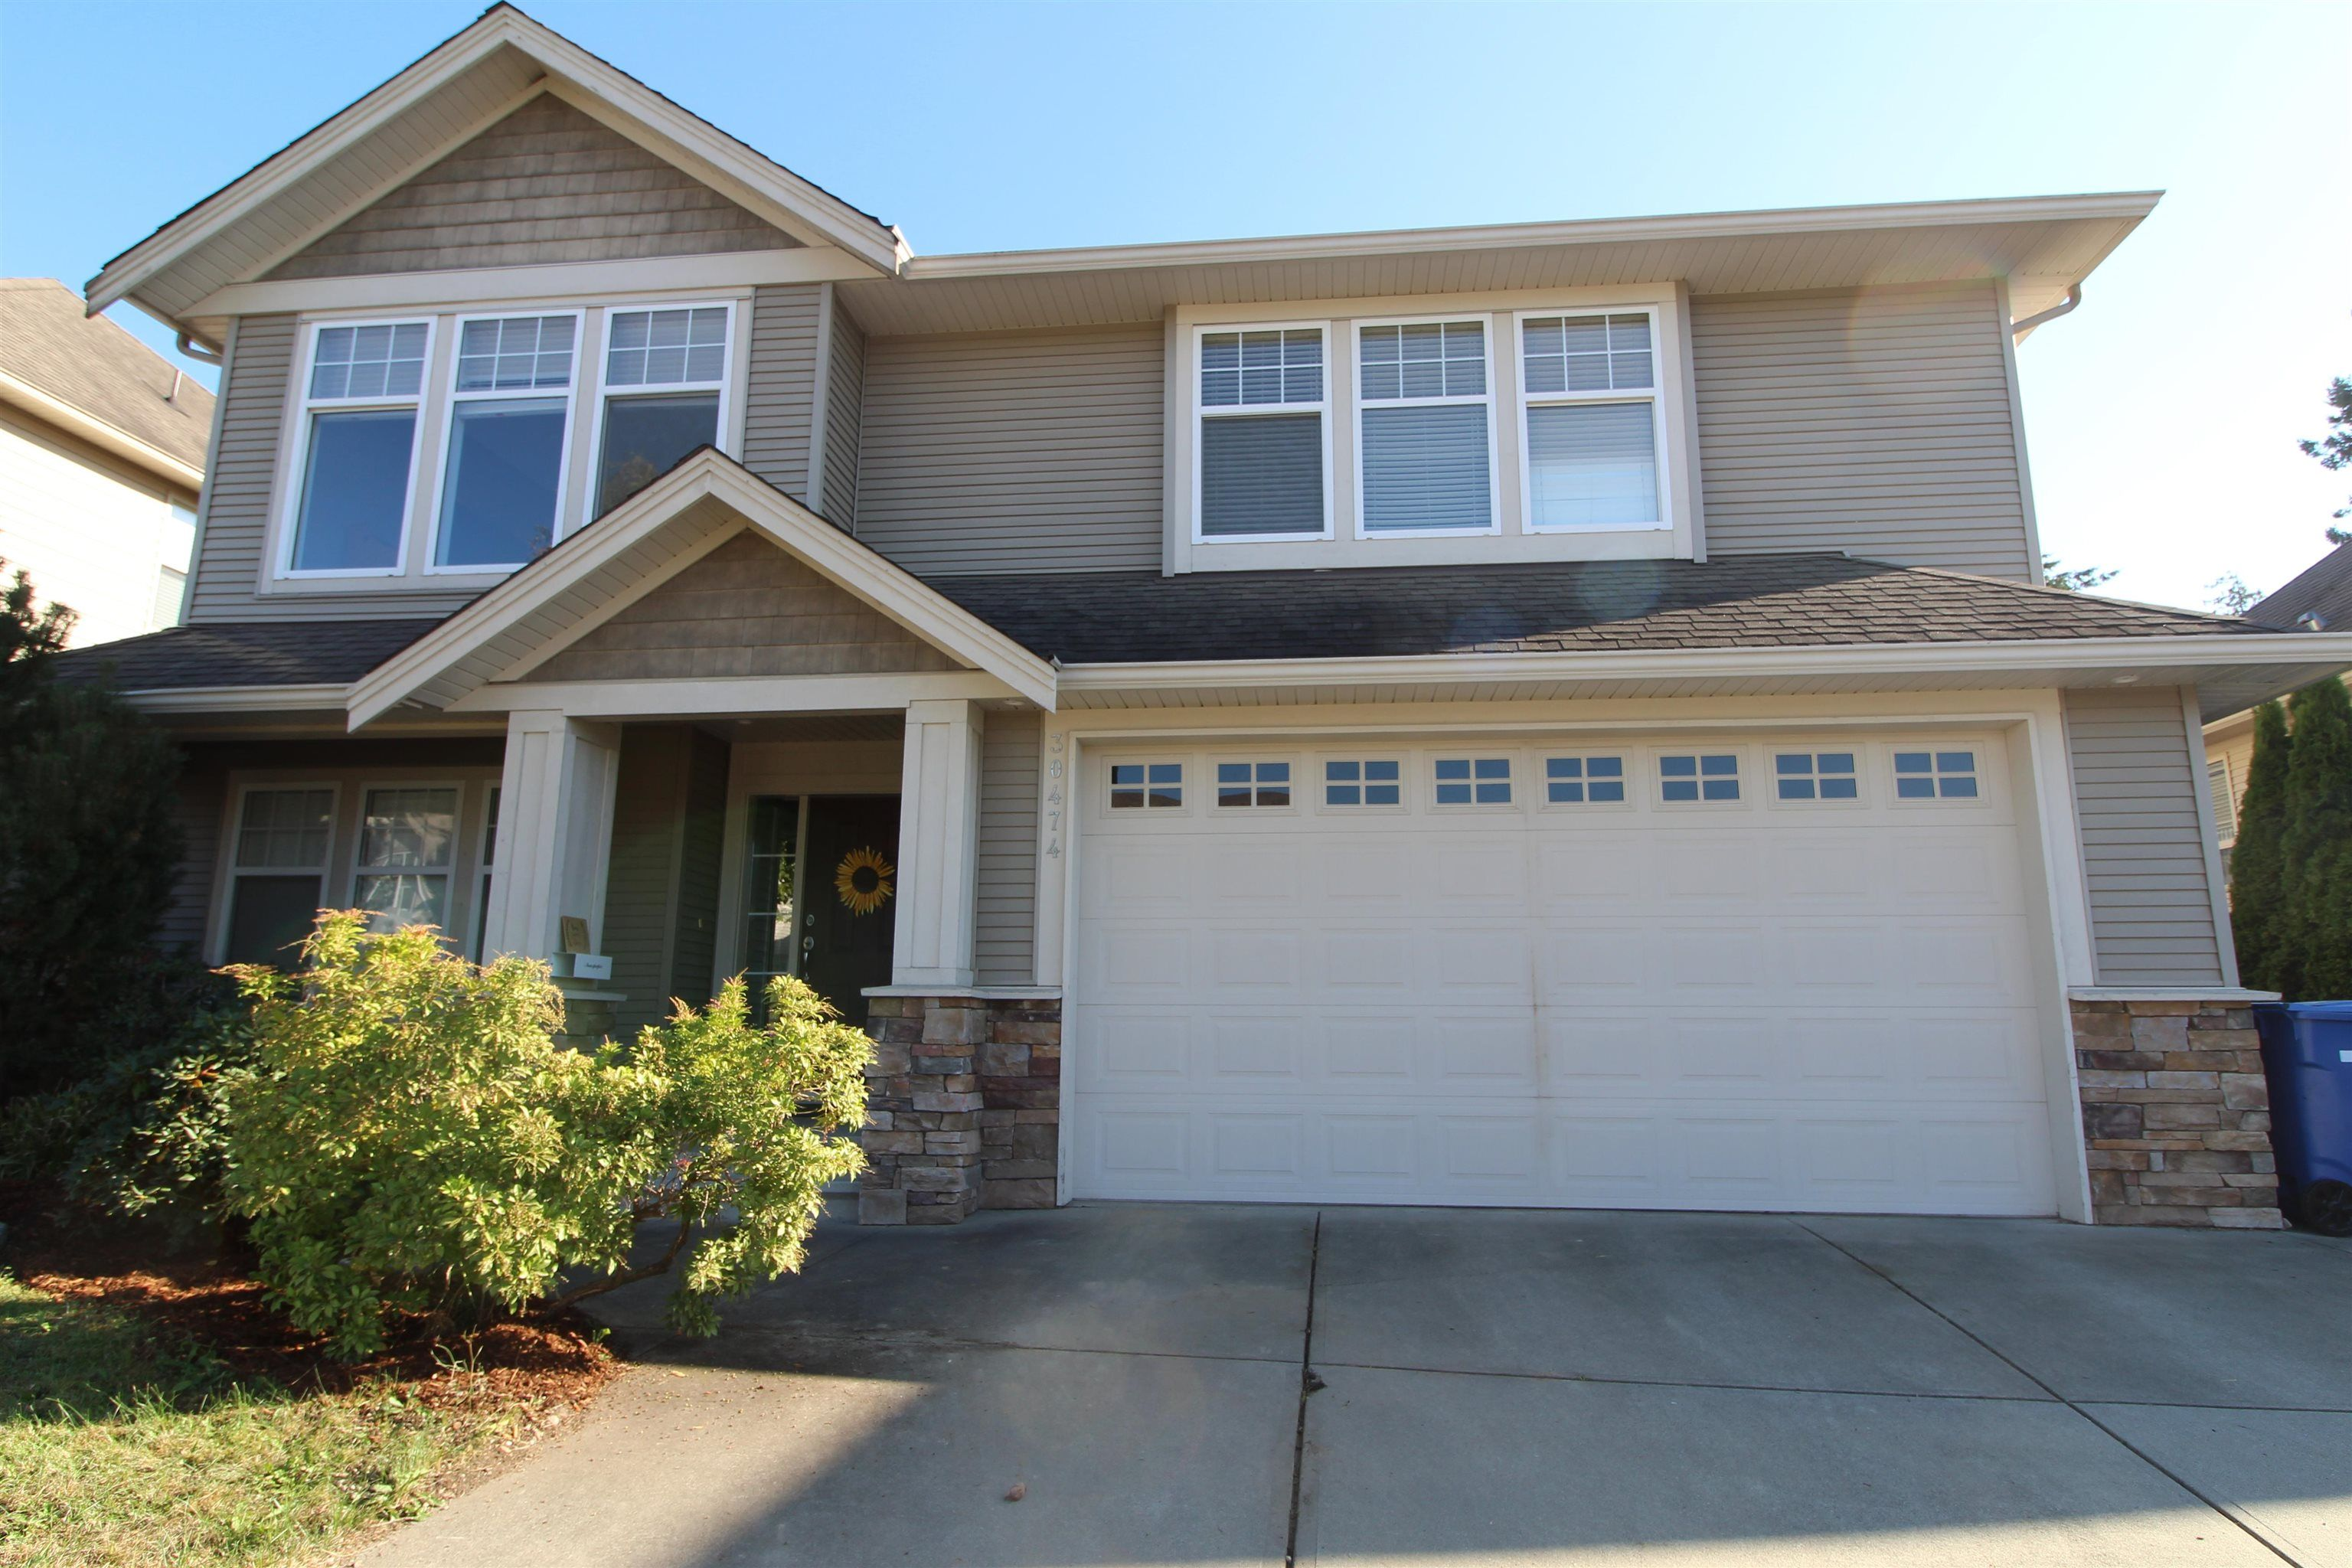 Main Photo: 30474 HERITAGE Drive in Abbotsford: Abbotsford West House for sale : MLS®# R2615929